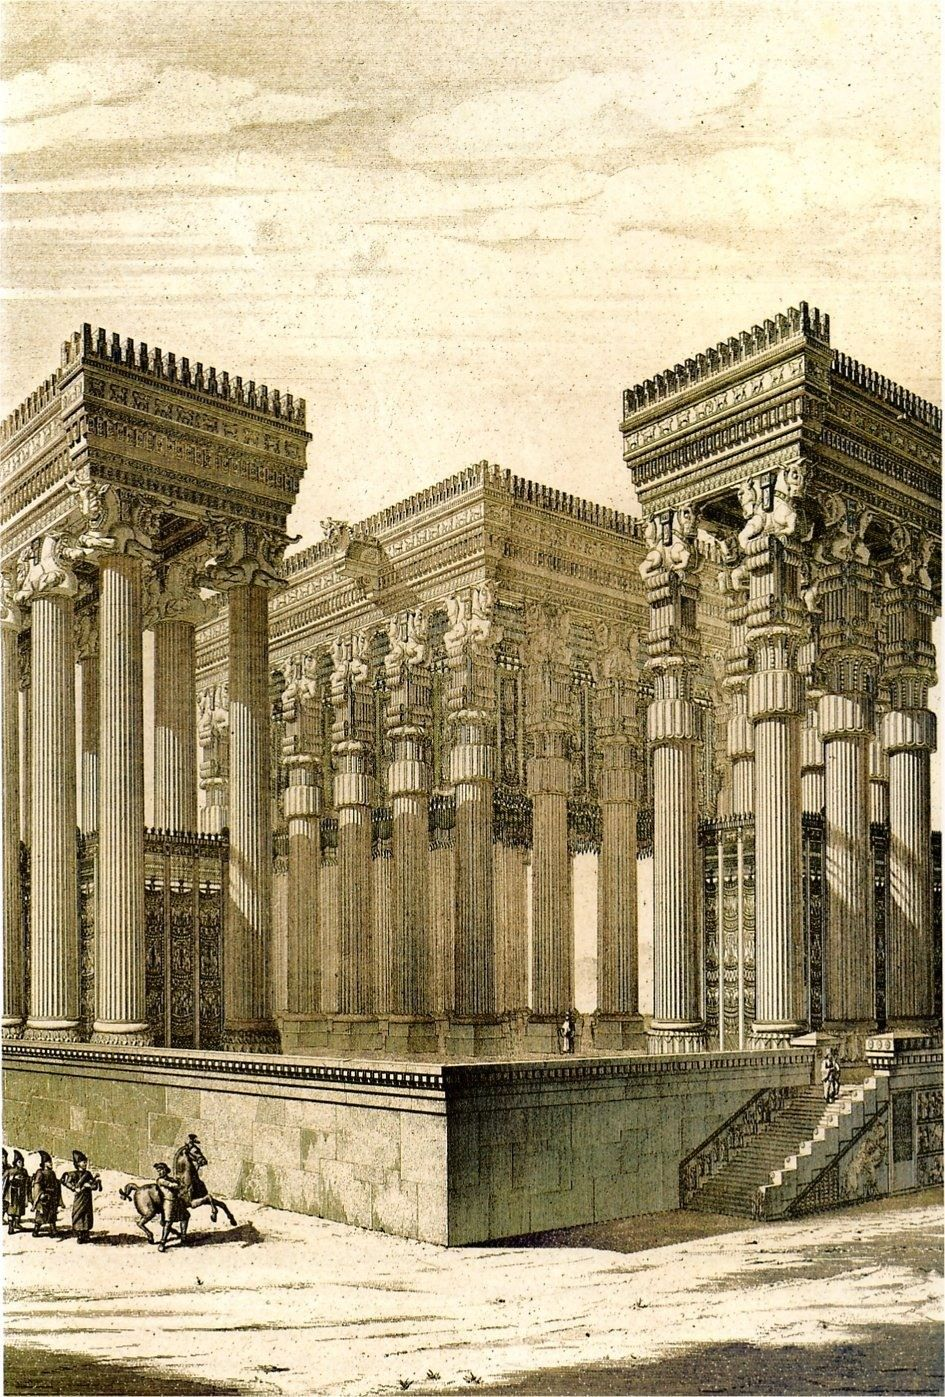 Reconstruction of the Apadana Palace, Persepelois illustration by Charles Chipiez Atlas Obscura